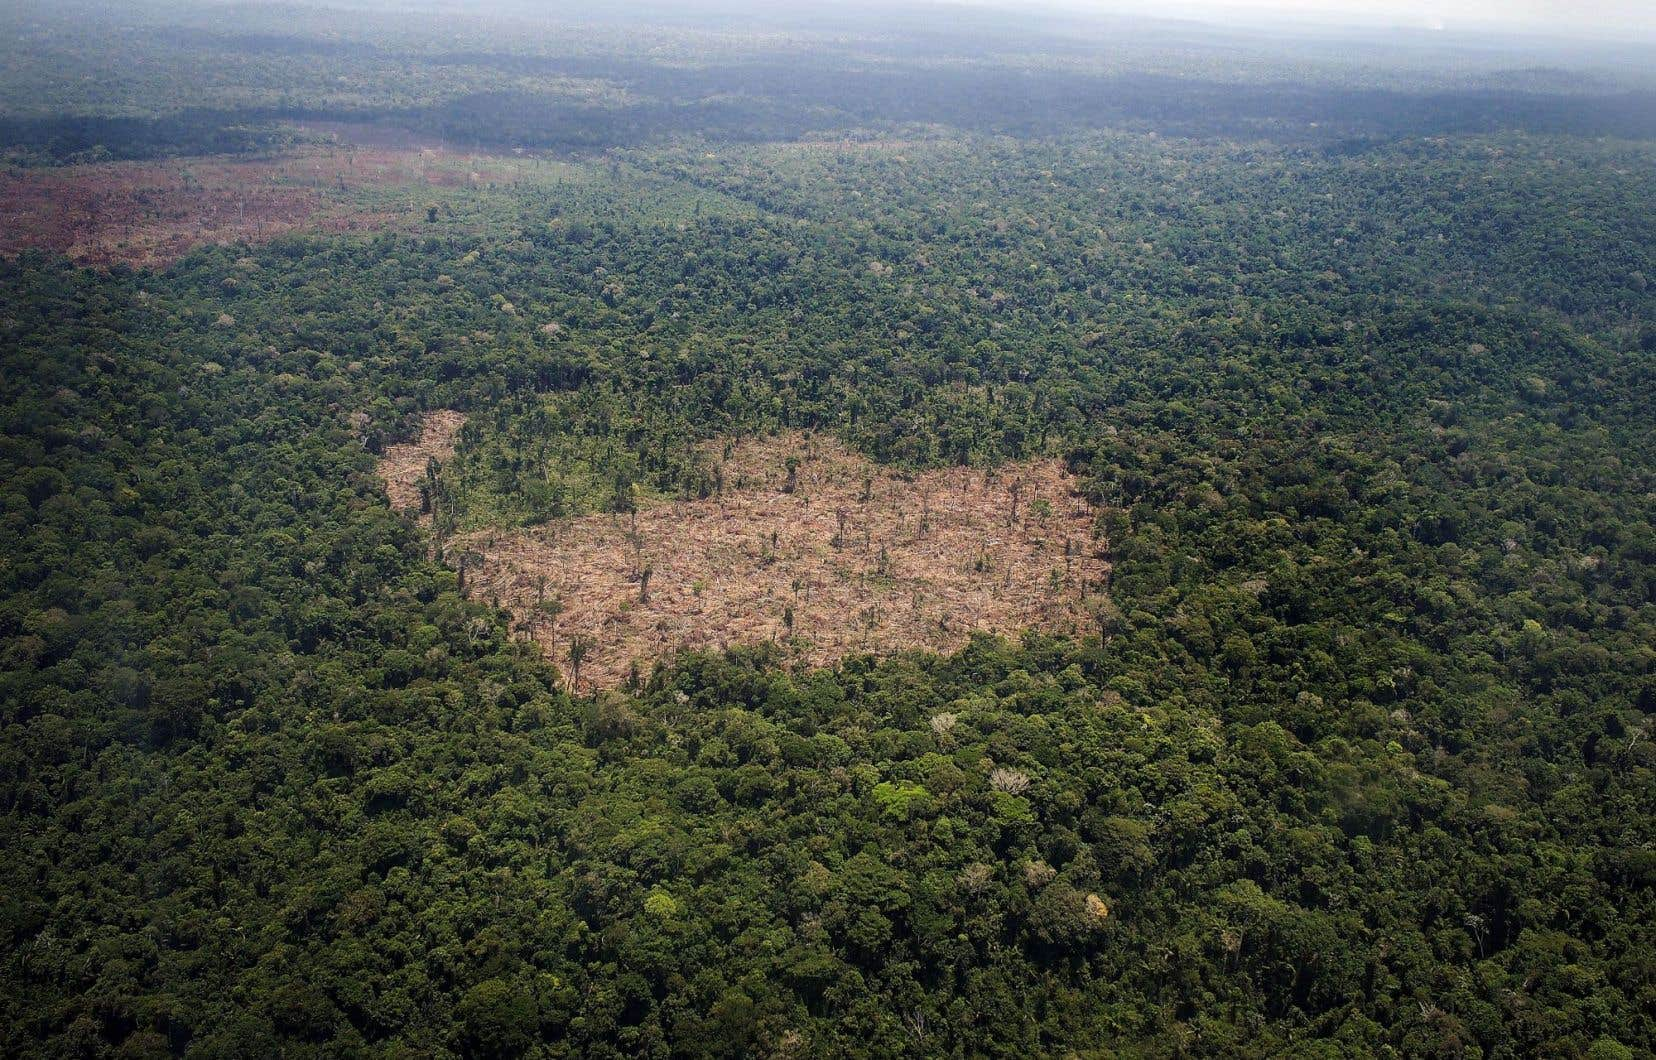 Vue d'une zone de déforestation au centre de la jungle amazonienne